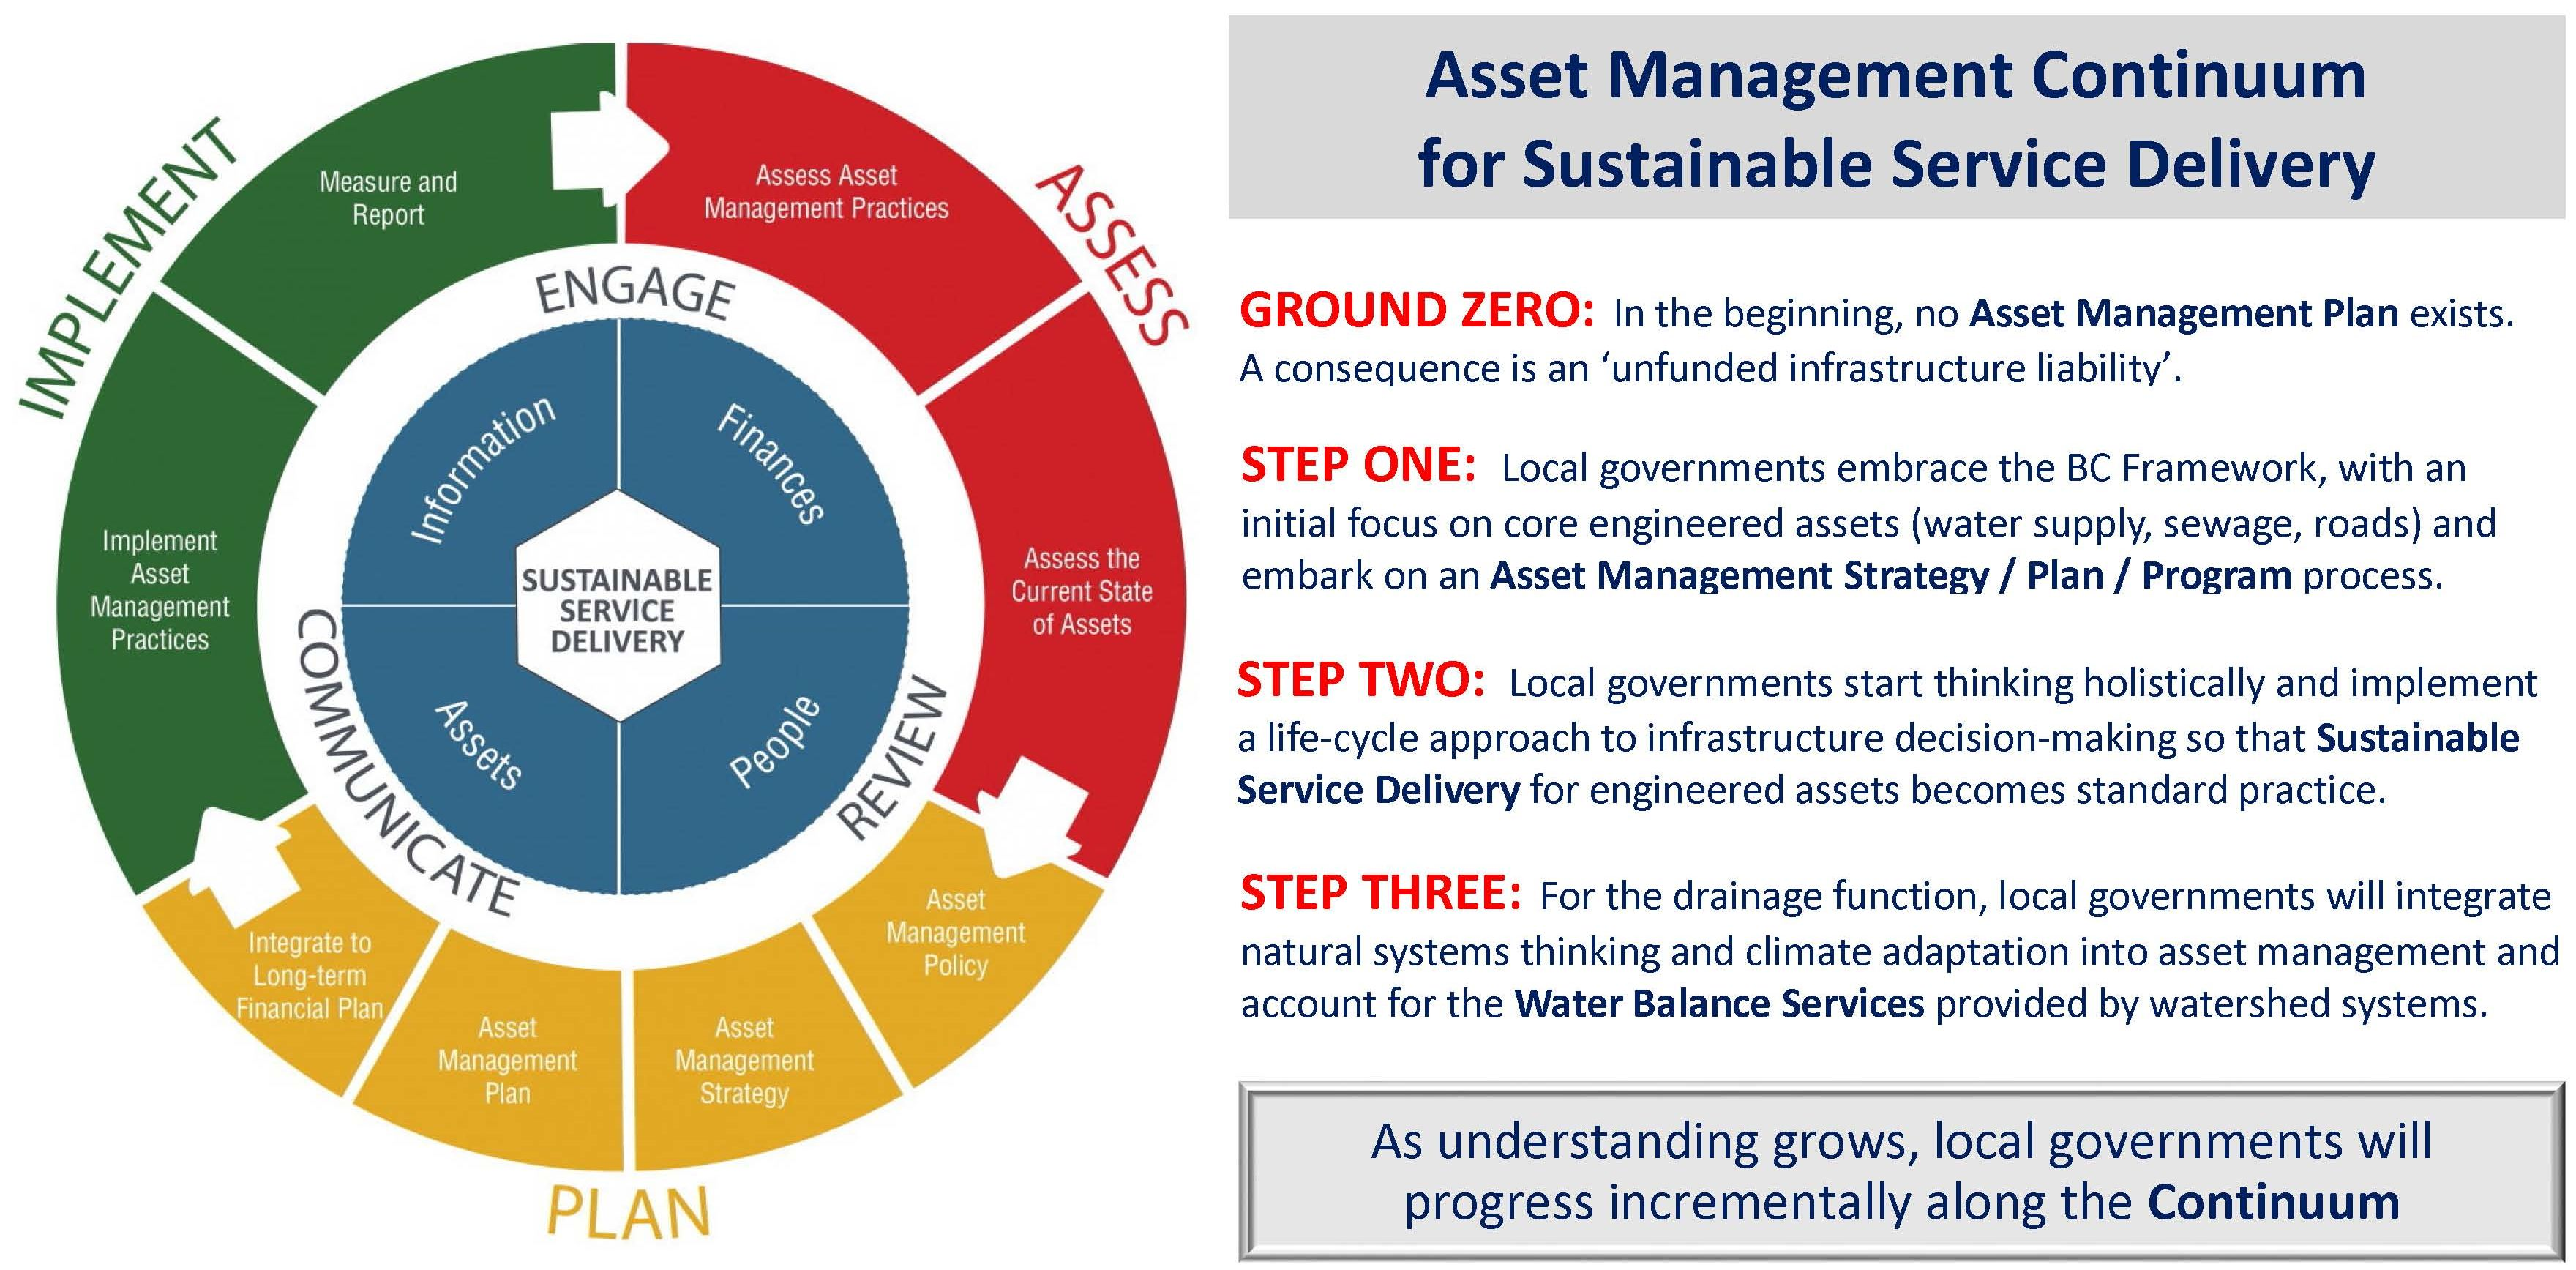 DOWNLOAD: https://waterbucket.ca/wscblog/files/2015/01/Asset-Management-for-Sustainable-Service_Delivery_A-Framework_for_BC_Dec-2014_short-version.pdf